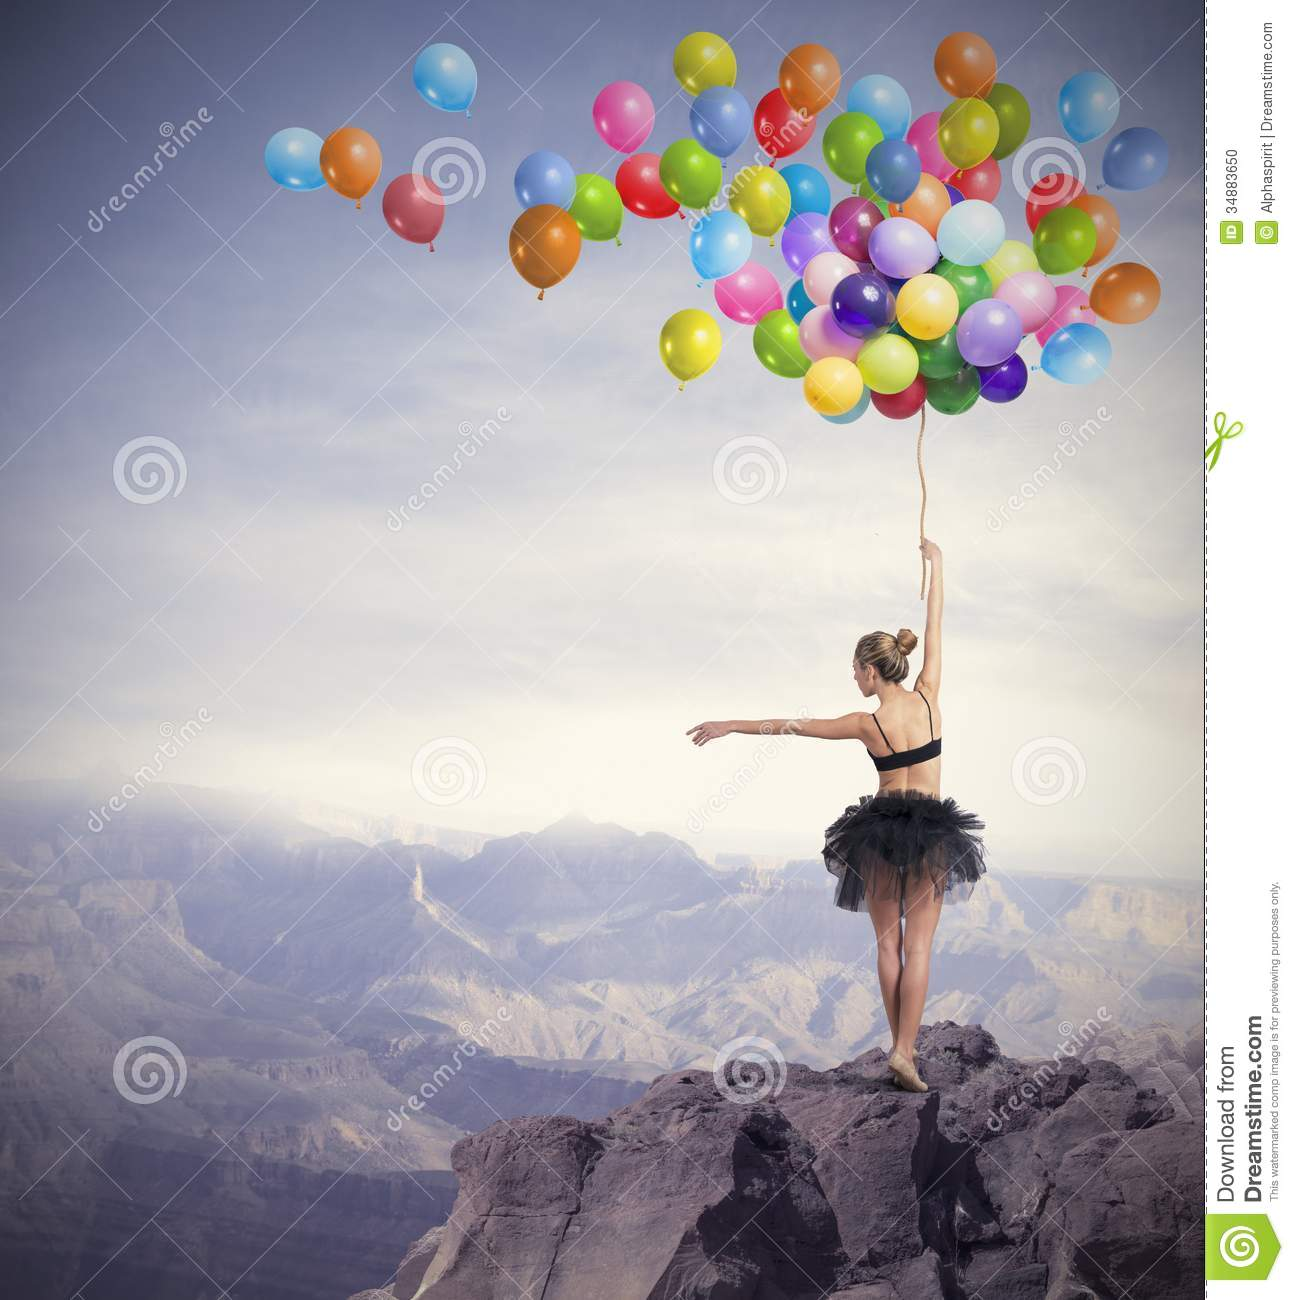 Dancer With Balloons Stock Photo - Image: 34883650